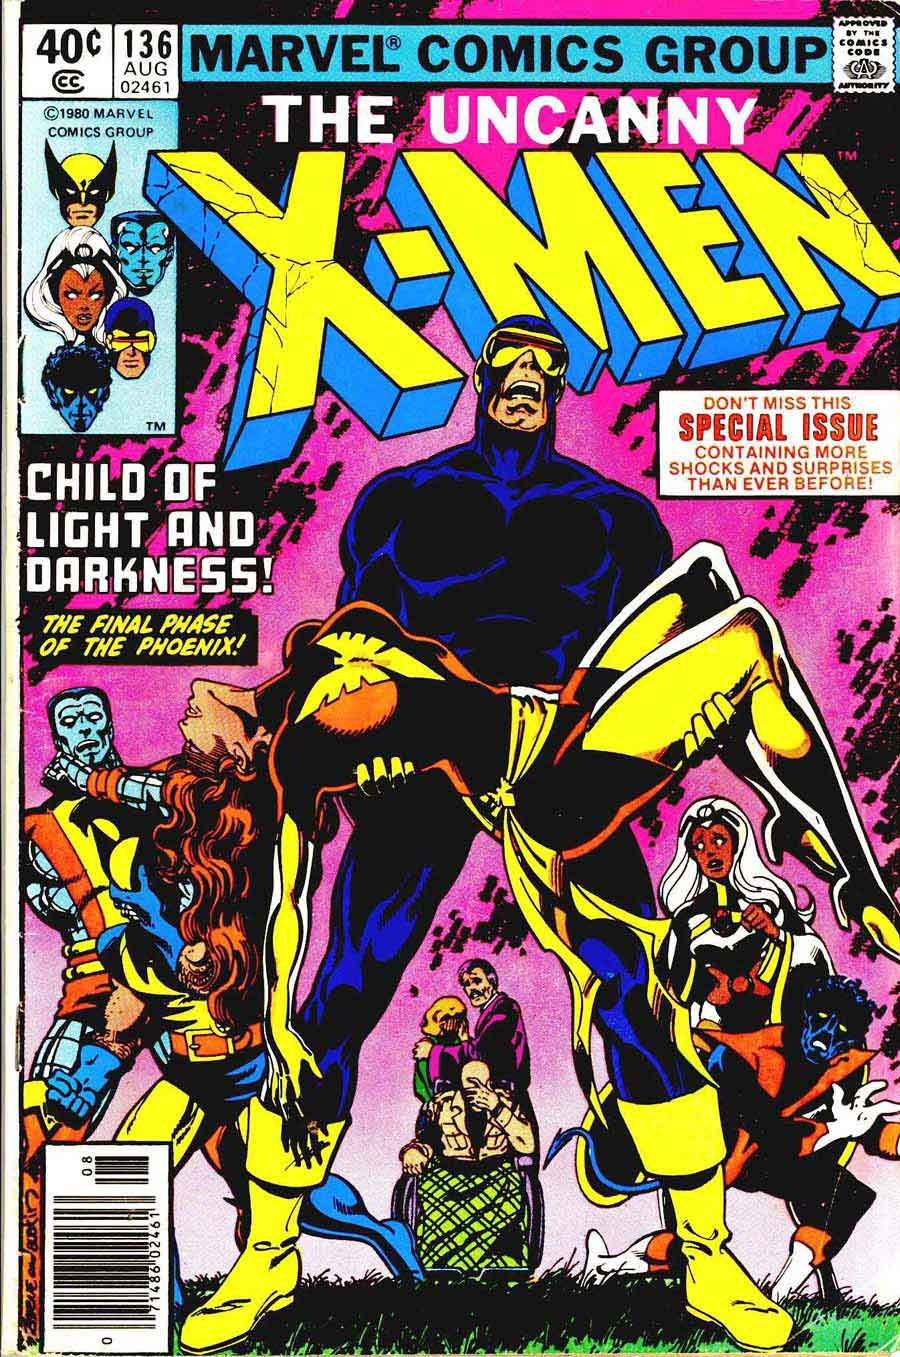 X-men v1 #136 marvel comic book cover art by John Byrne